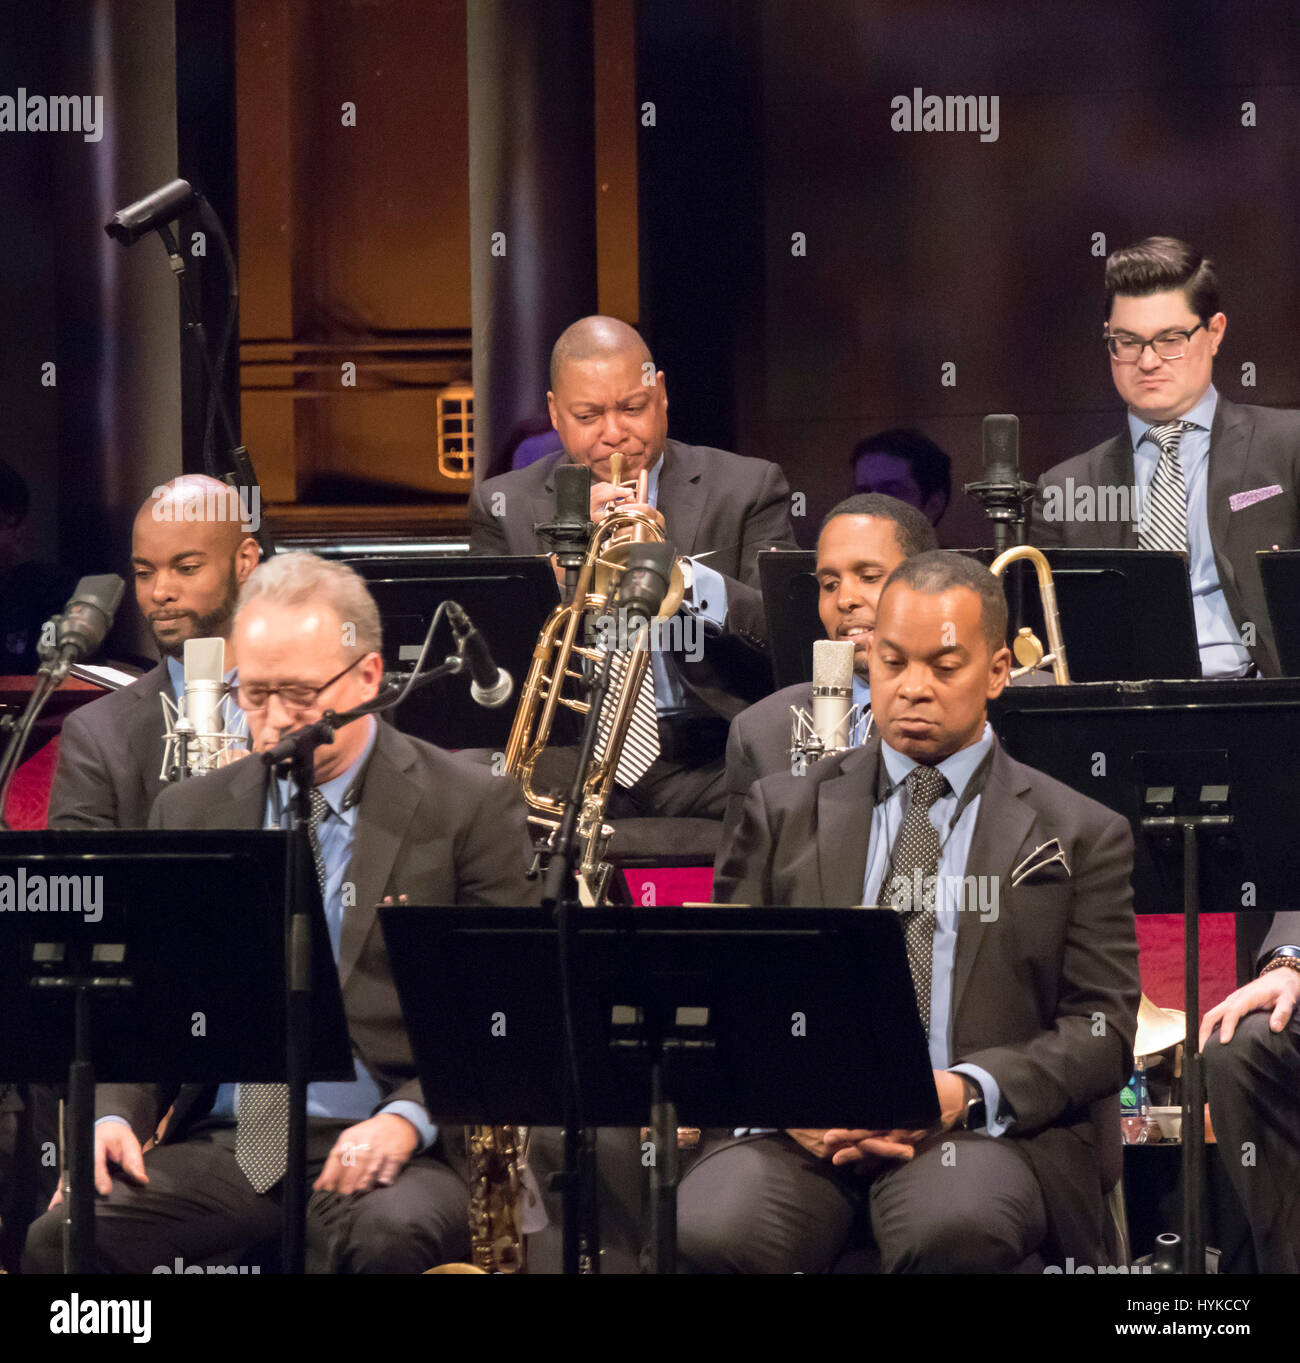 Jazz of the '50s: Overflowing with Style concert, Jazz at Lincoln Center orchestra, Wynton Marsalis, orchestra leader, - Stock Image